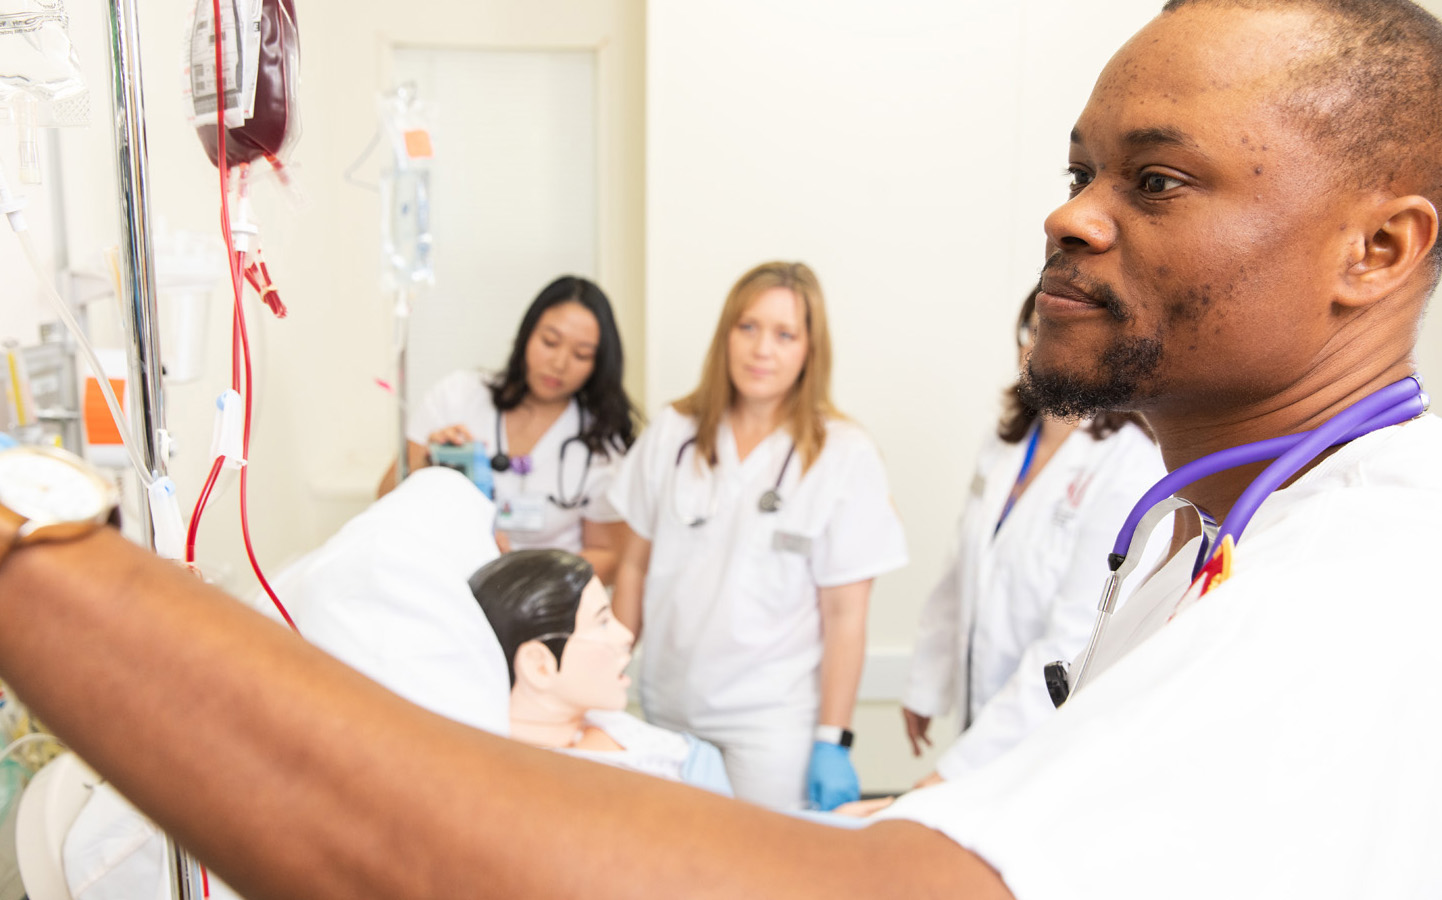 Nursing students learning in a hospital setting